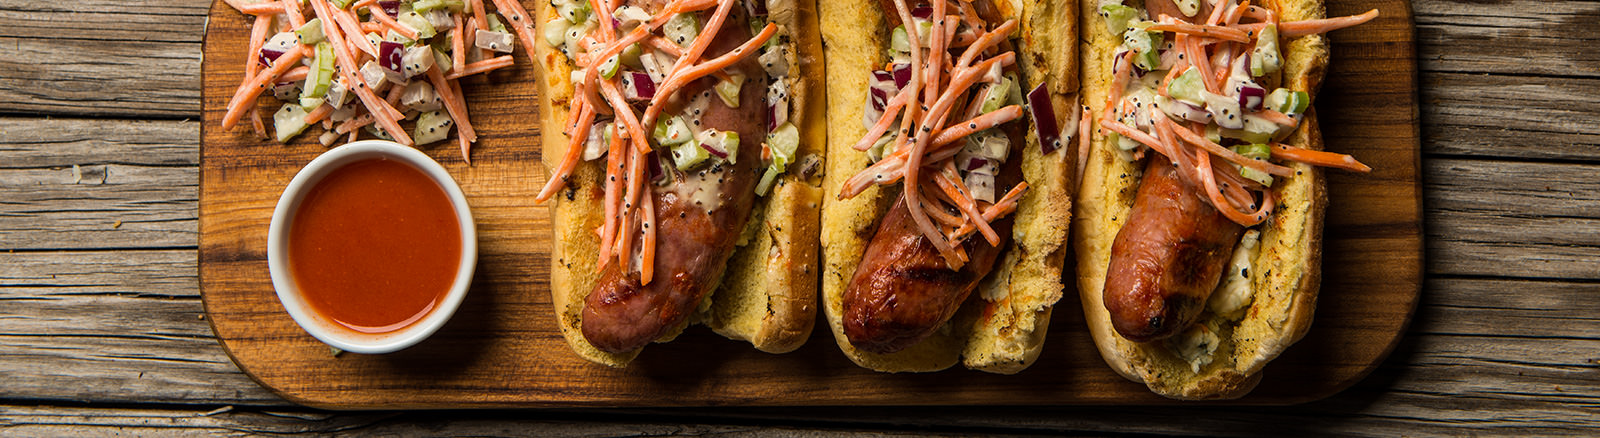 Buffalo Chicken Sausage with Bleu Cheese | Traeger Wood ...